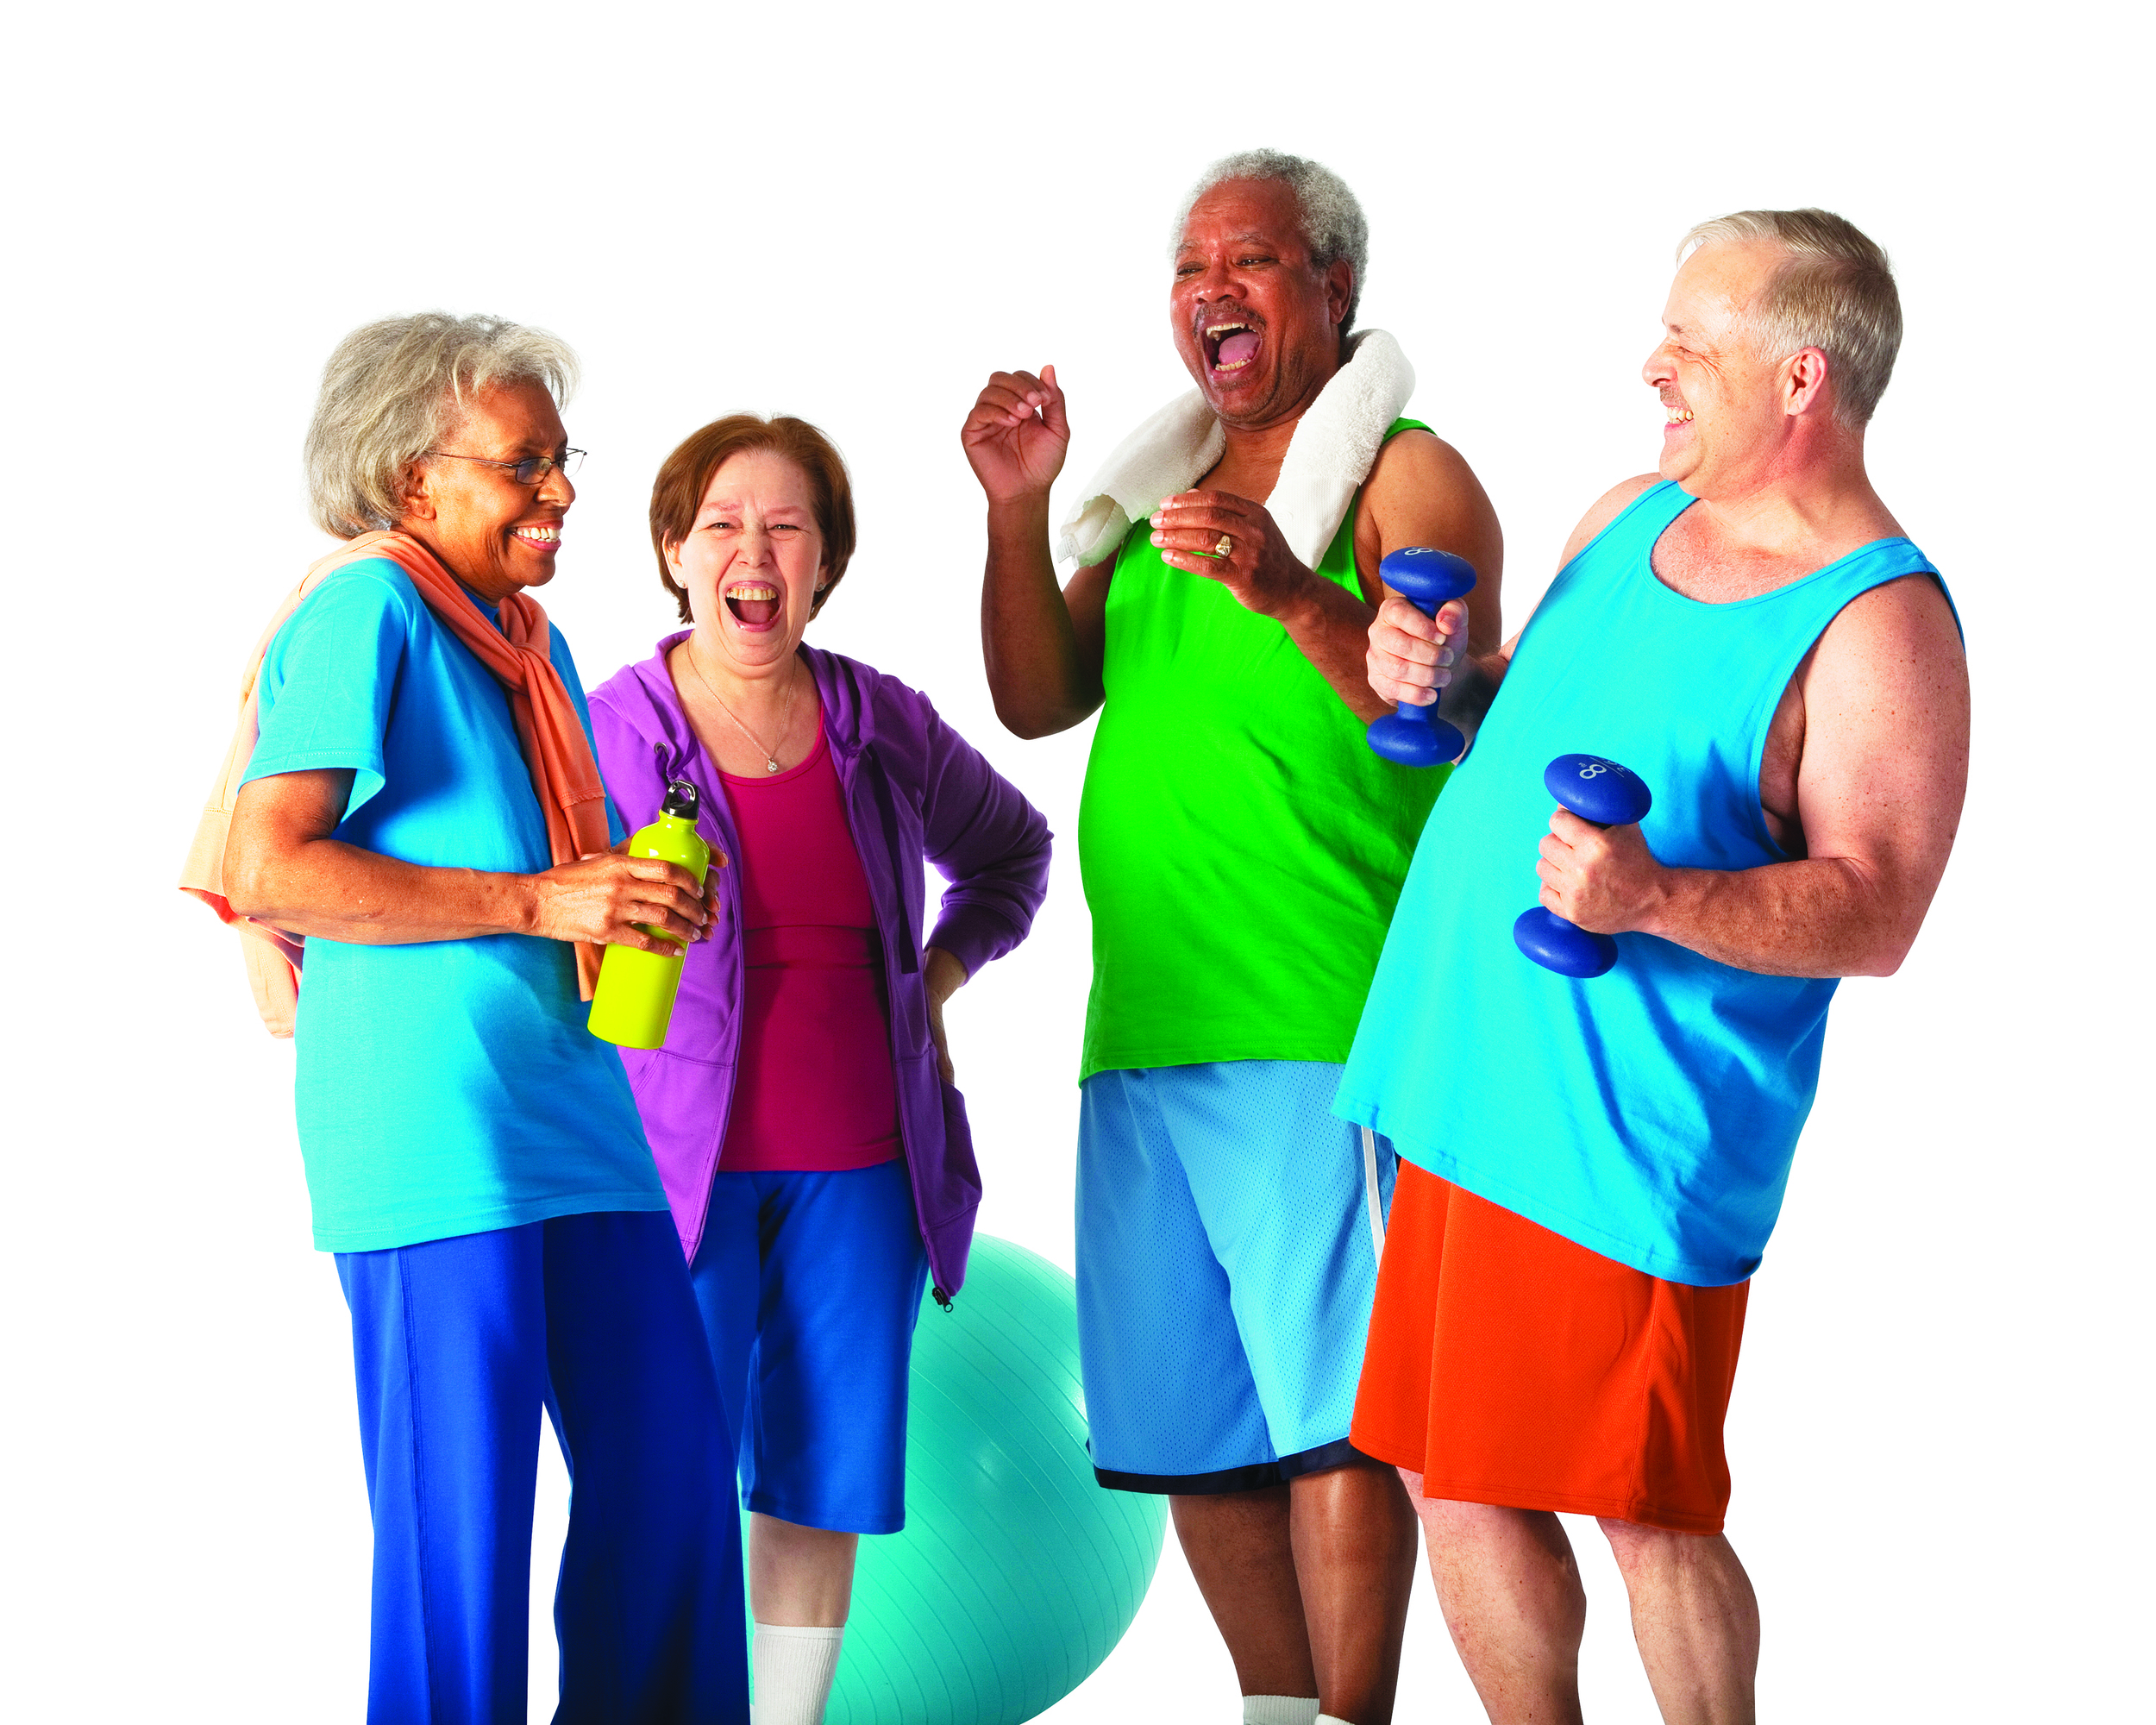 THRIVING SENIORS:    hrive Low Impact is a great alternative for individuals who are looking for a total body workout at a lower intensity and lower impact than our Thrive Group Training classes. Classes combine flexibility, strength training, and cardiorespiratory training for a total body workout.